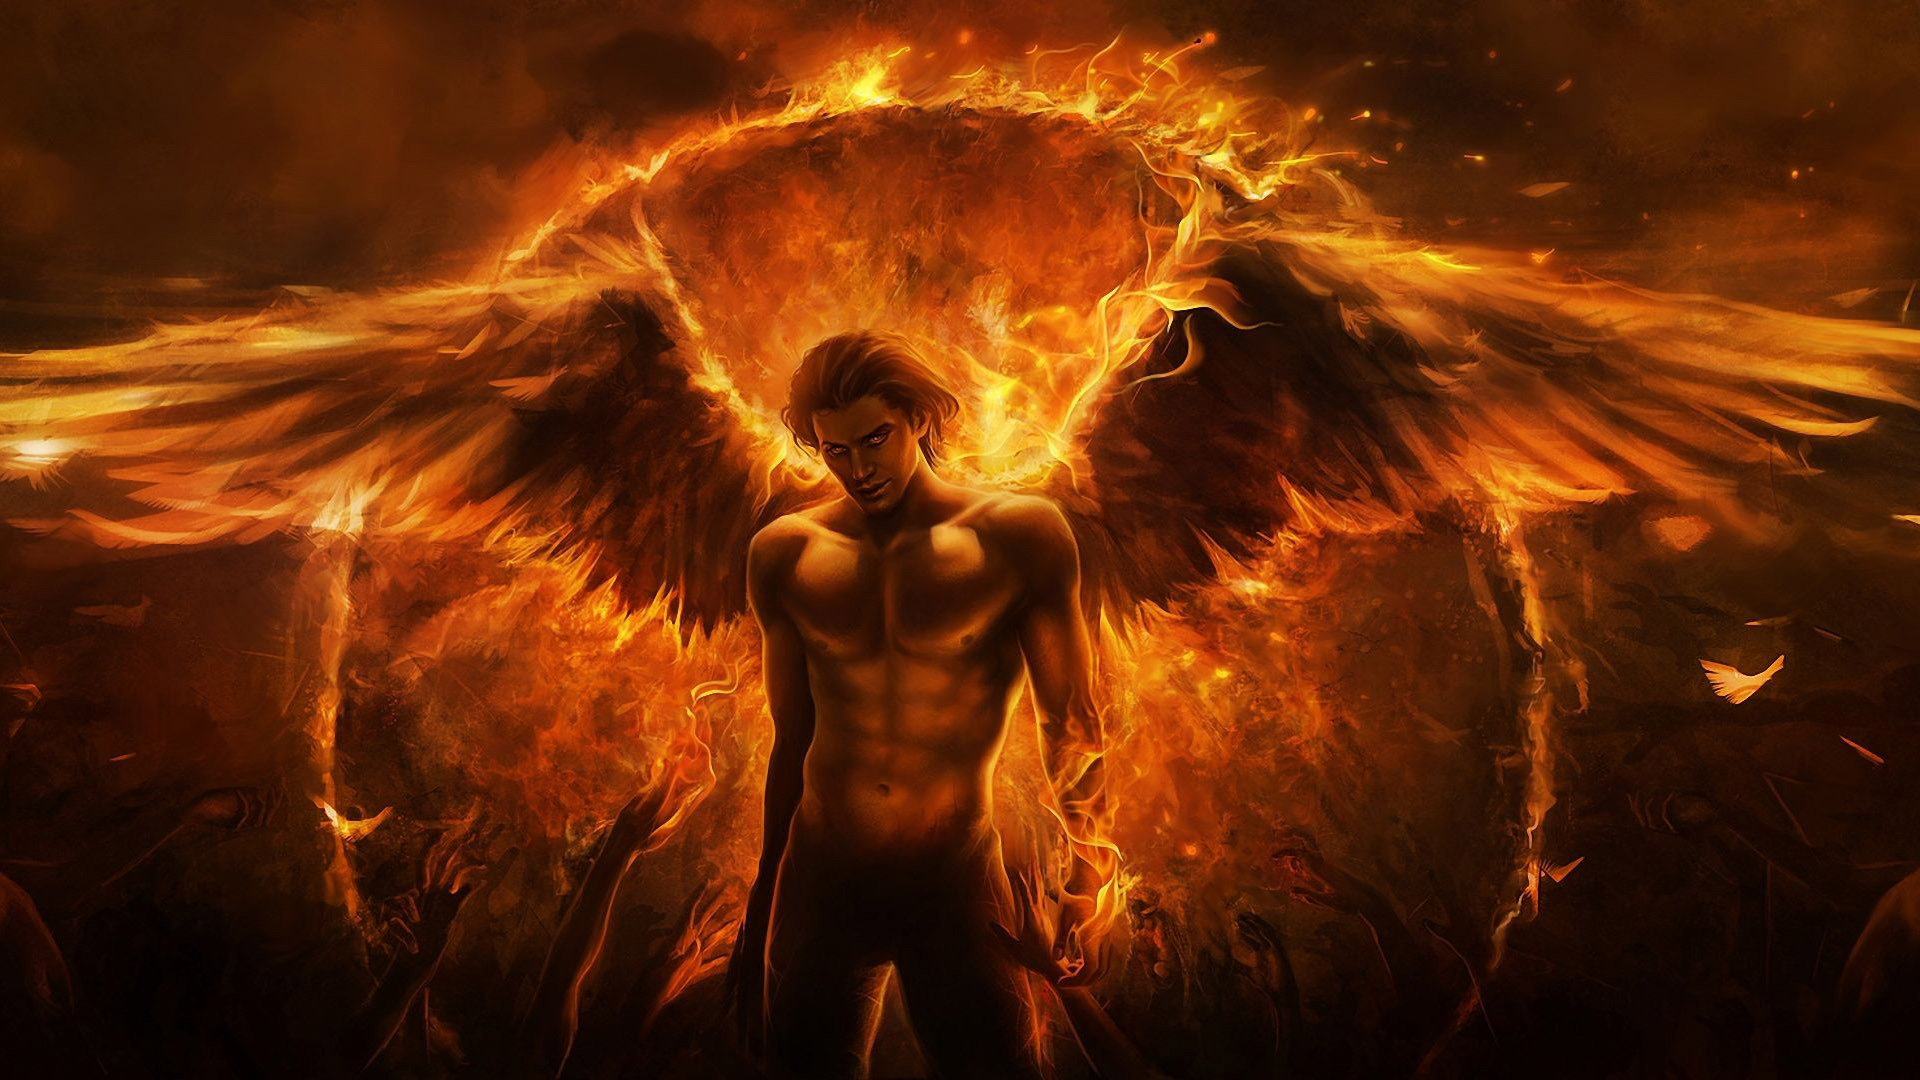 Hd Wallpapers That Will Take You To World Of Fantasy: Angel Wallpapers High Quality